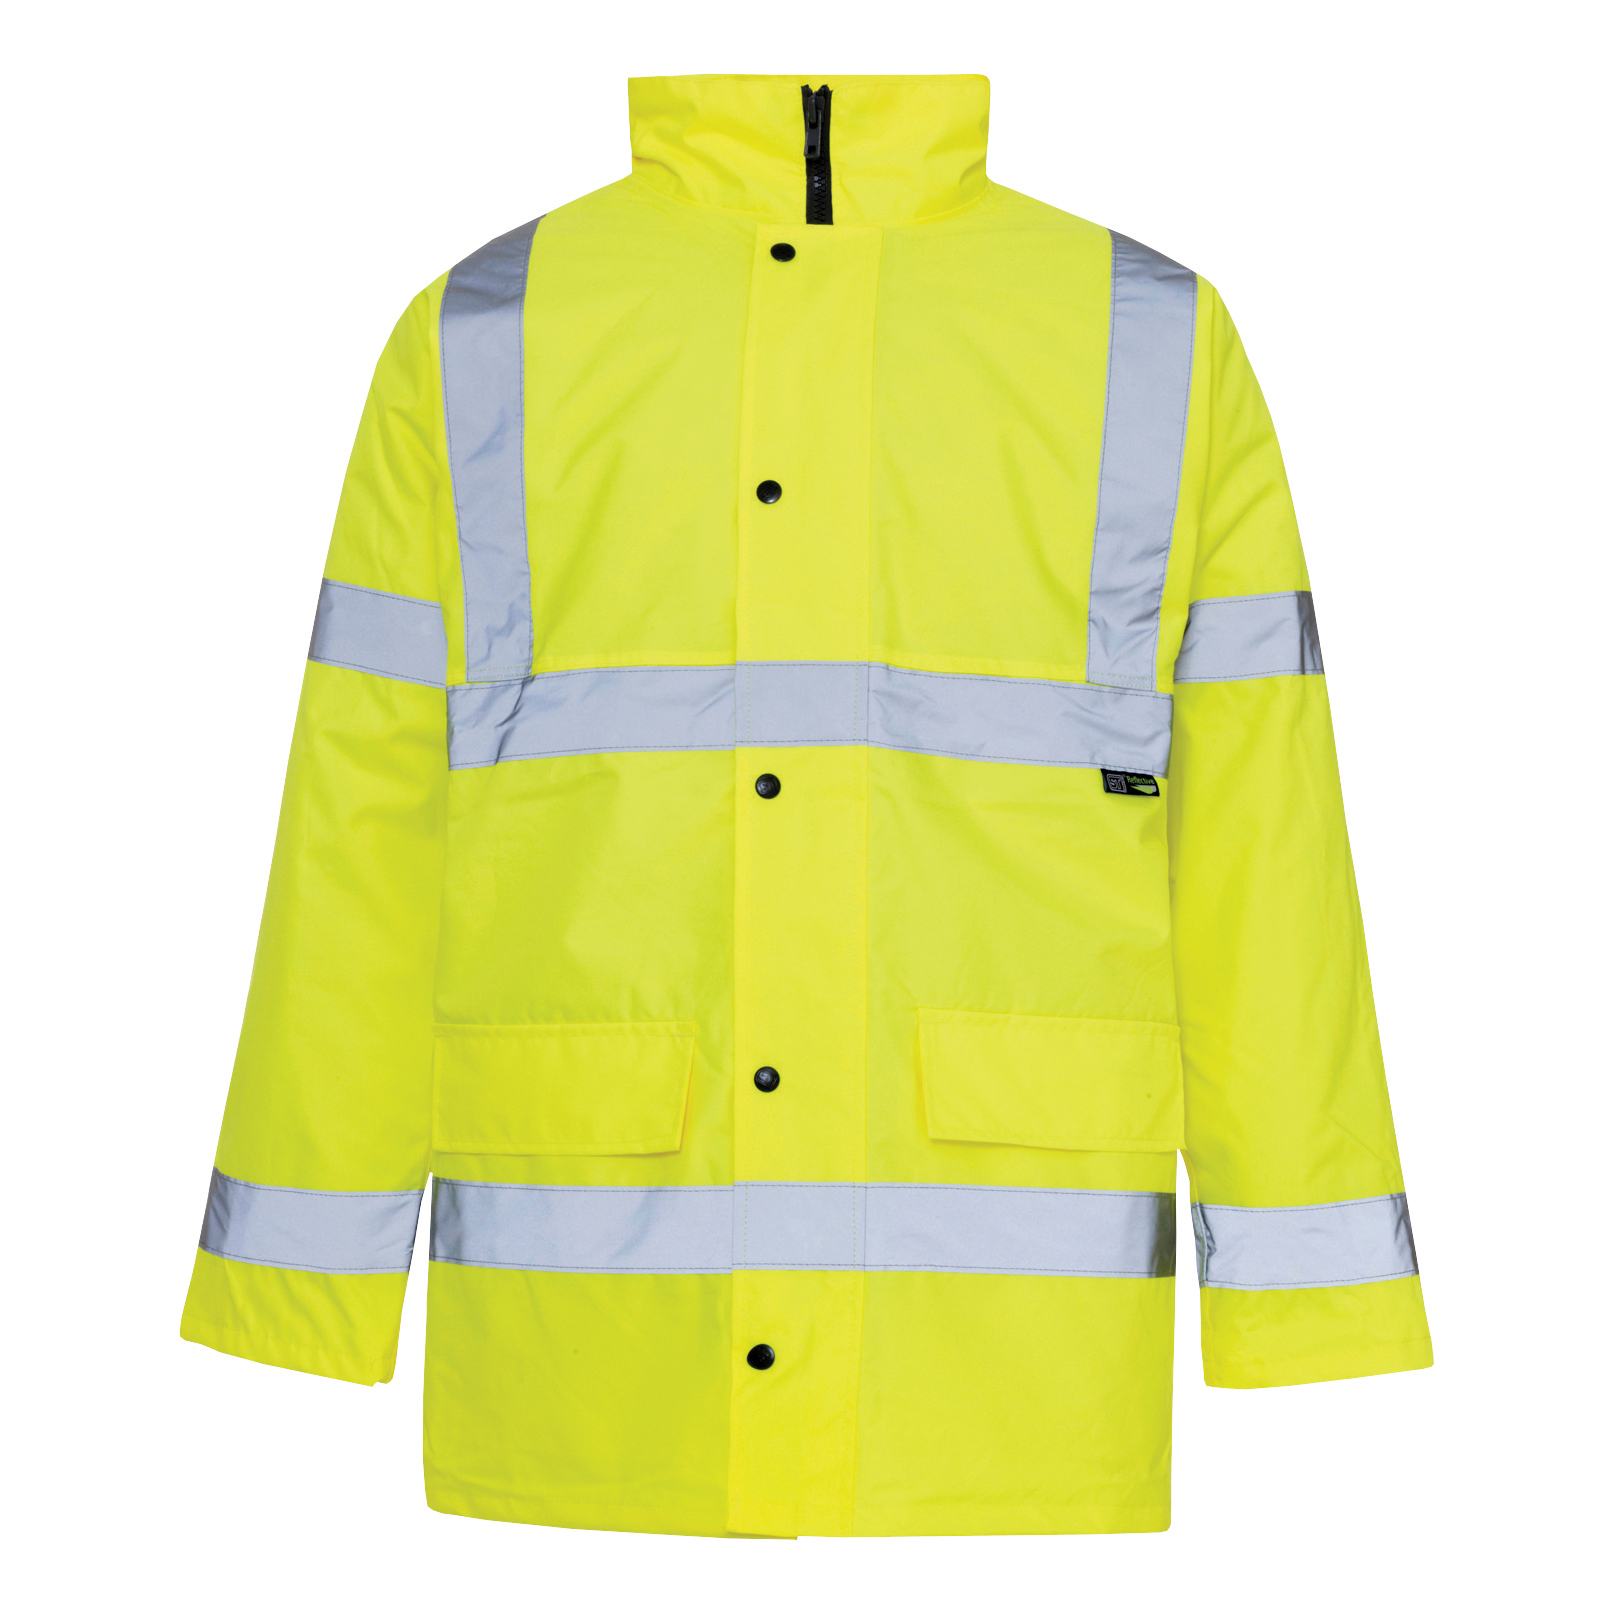 BSeen High Visibility Constructor Jacket 2XL Saturn Yellow Ref CTJENGSYXXL *Approx 3 Day Leadtime*